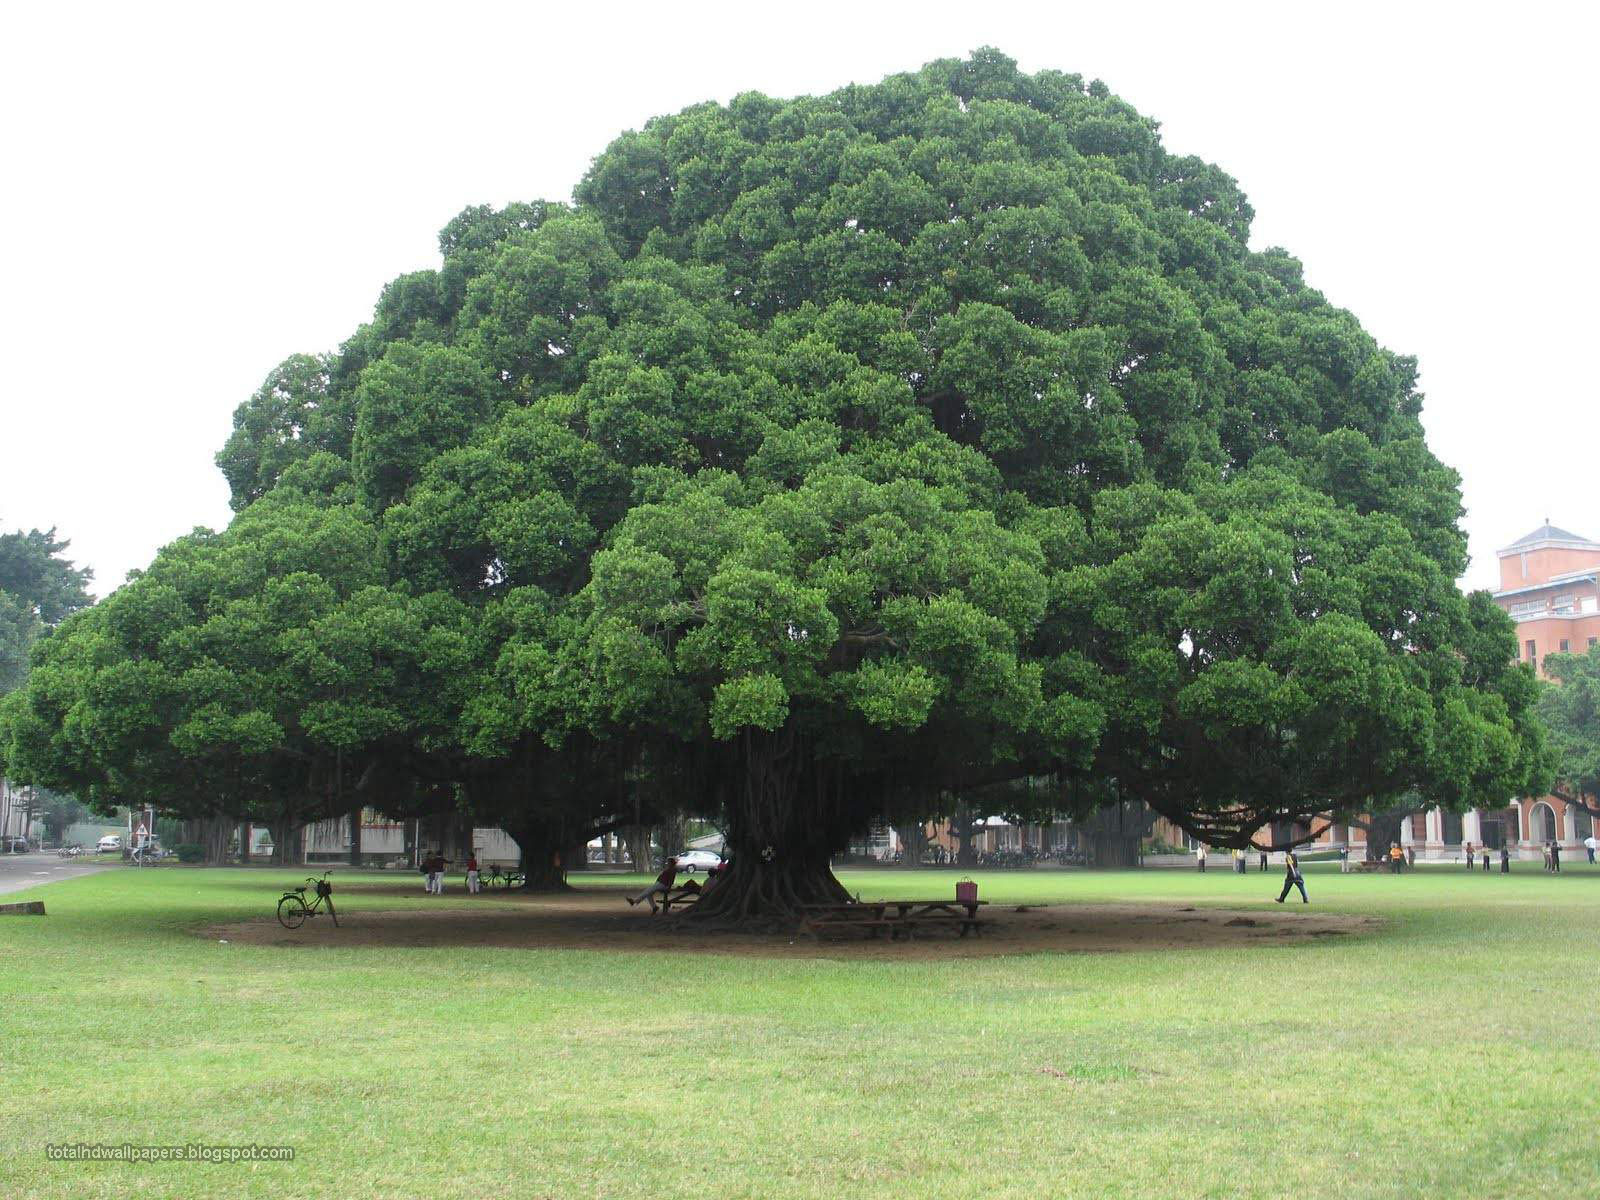 Download Banyan Tree Wallpaper Gallery